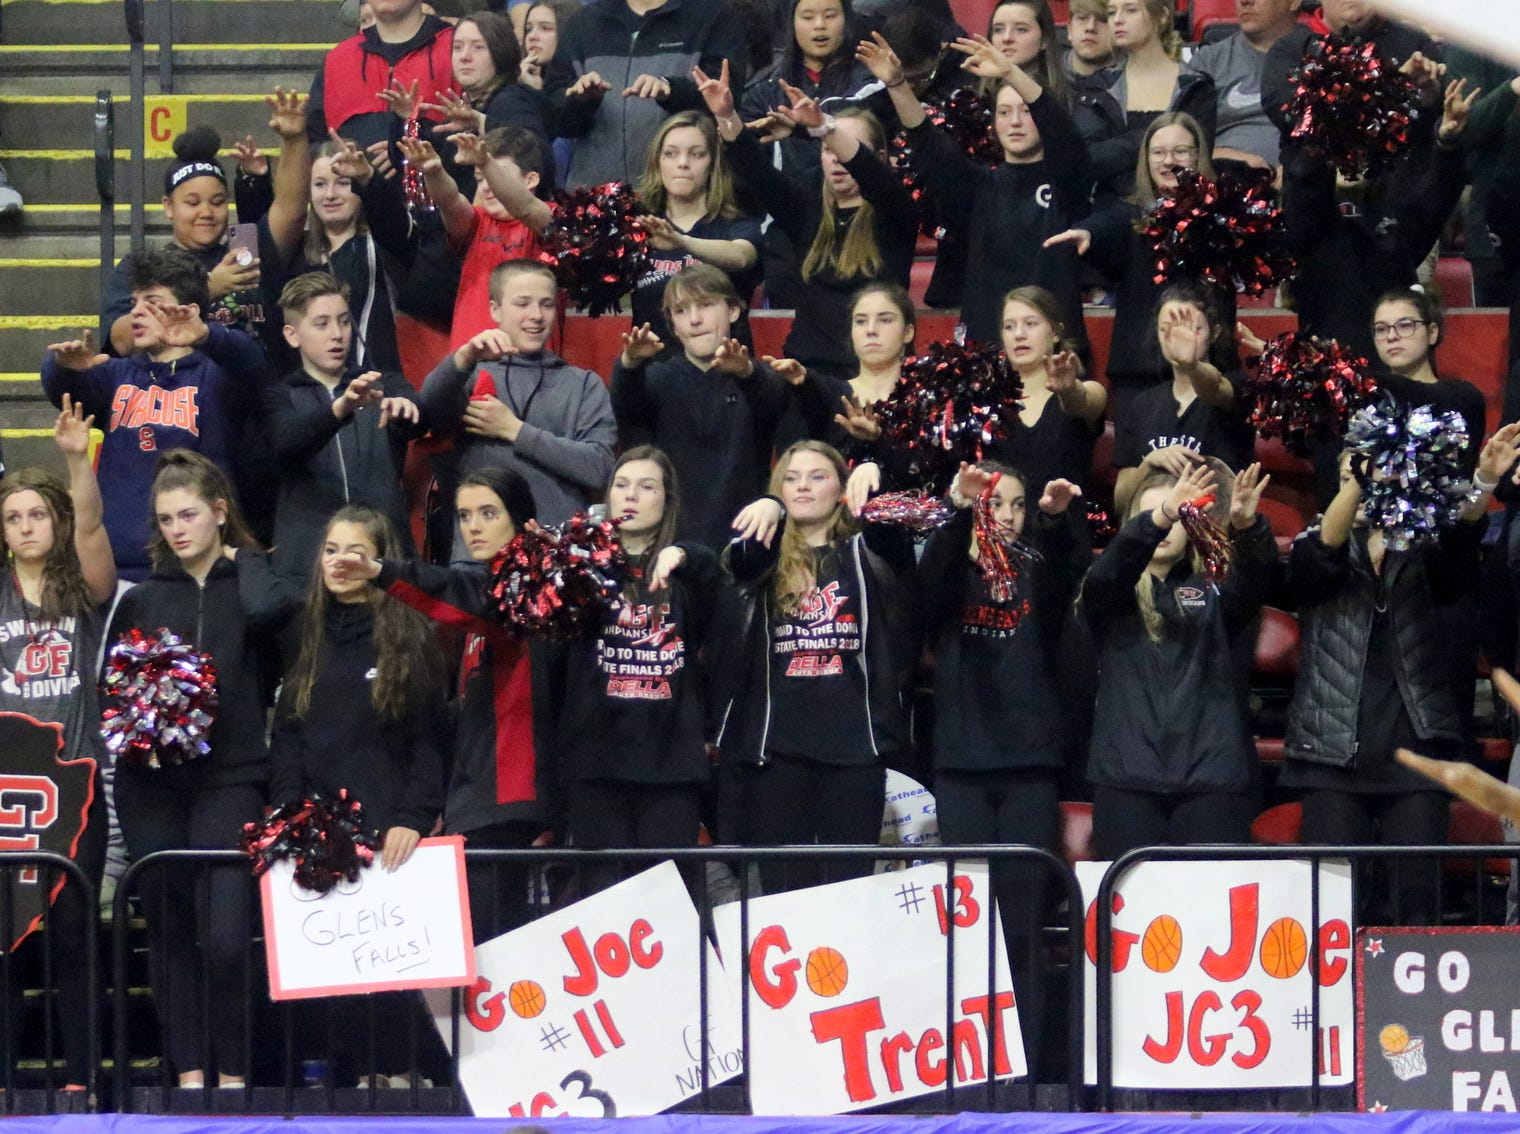 Glens Falls fans cheer during an 83-63 win over Olean in a Class B boys basketball state semifinal March 15, 2019 at Floyd L. Maines Veterans Memorial Arena in Binghamton.